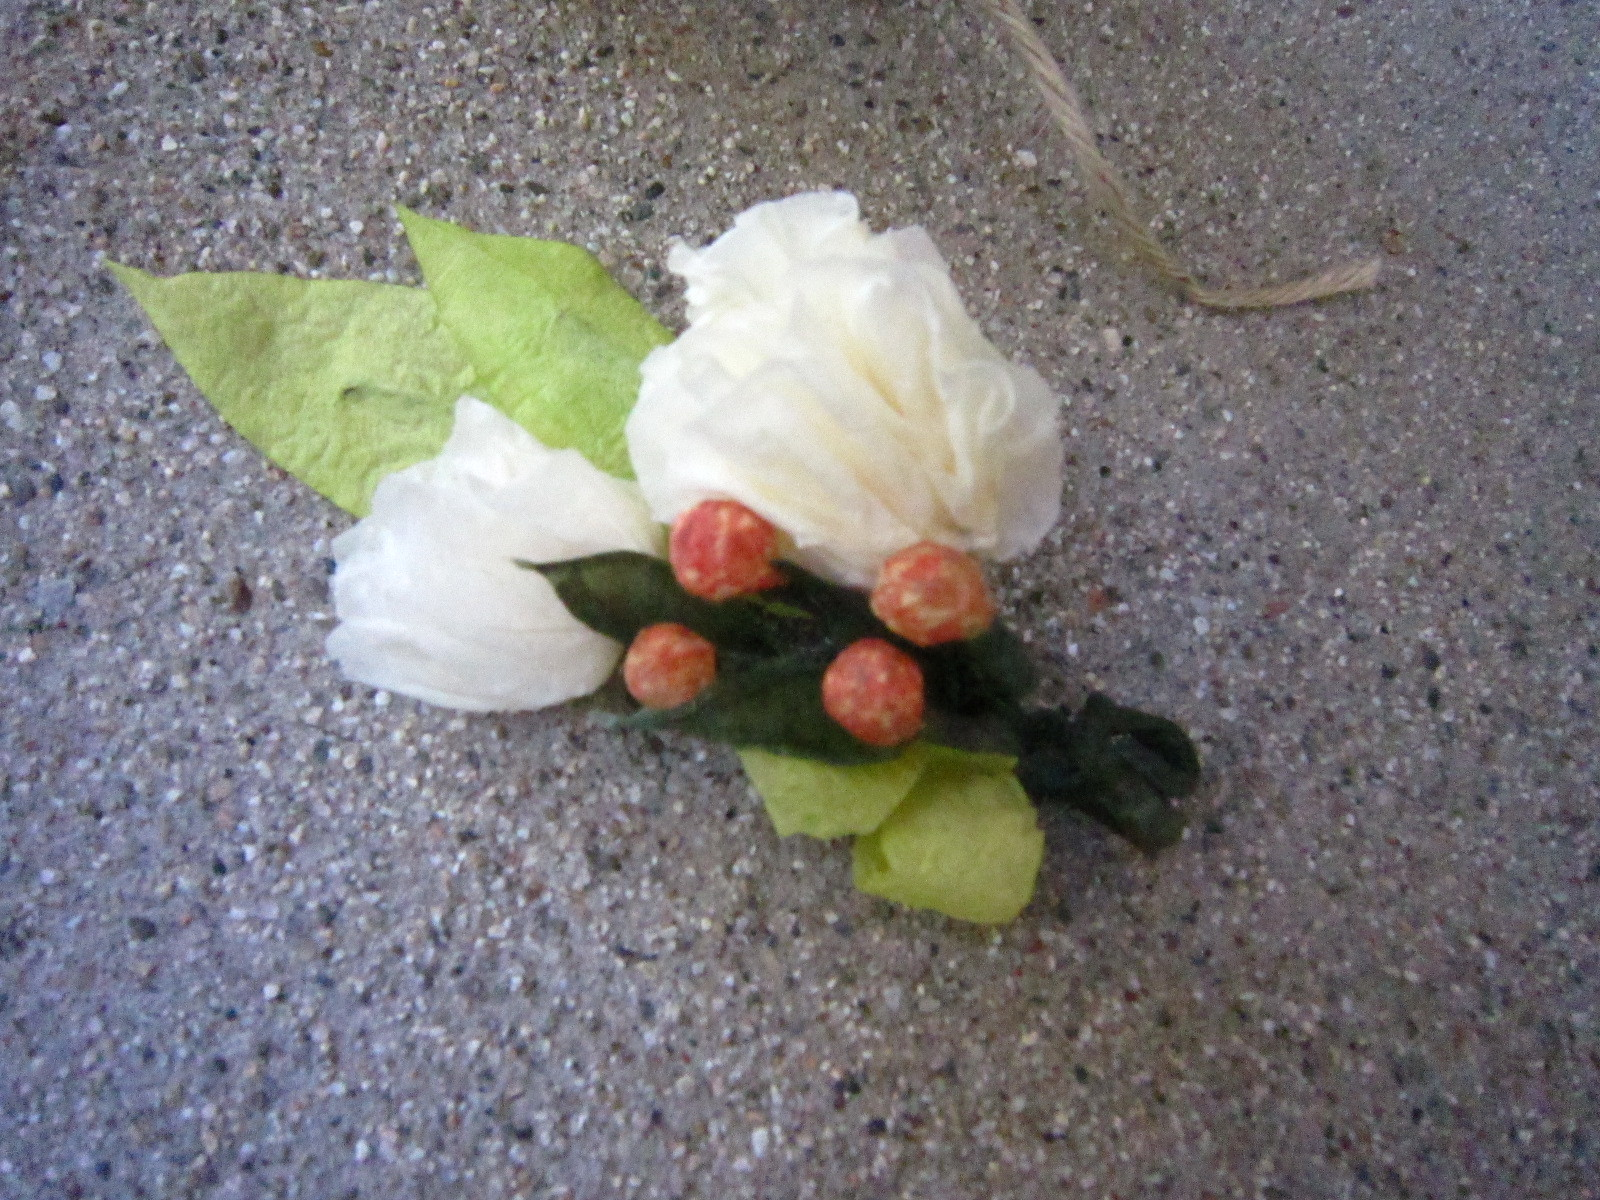 DIY, Flowers & Decor, Men, Paper, Flowers, Lime, Groom, Party, Bridal, Peach, Cream, Grooms, Fake, Artsy, Boutonnier